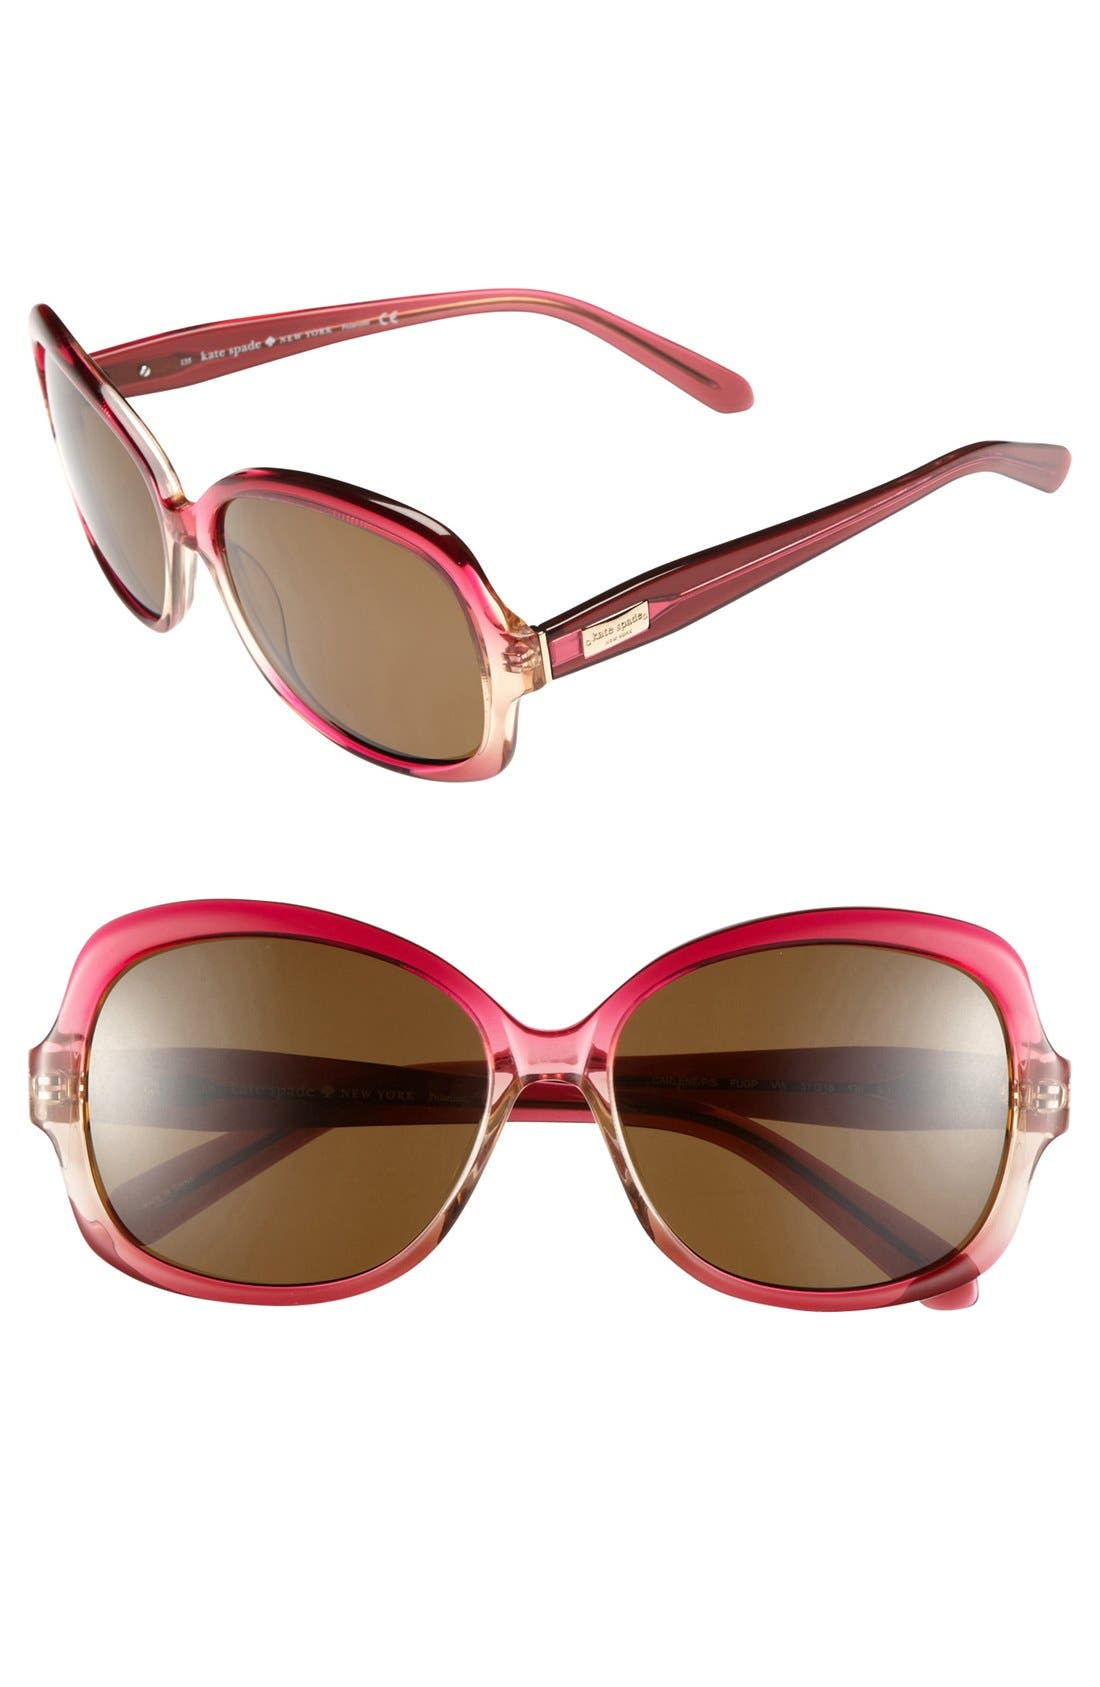 Main Image - kate spade new york 'carlene' 57mm polarized sunglasses